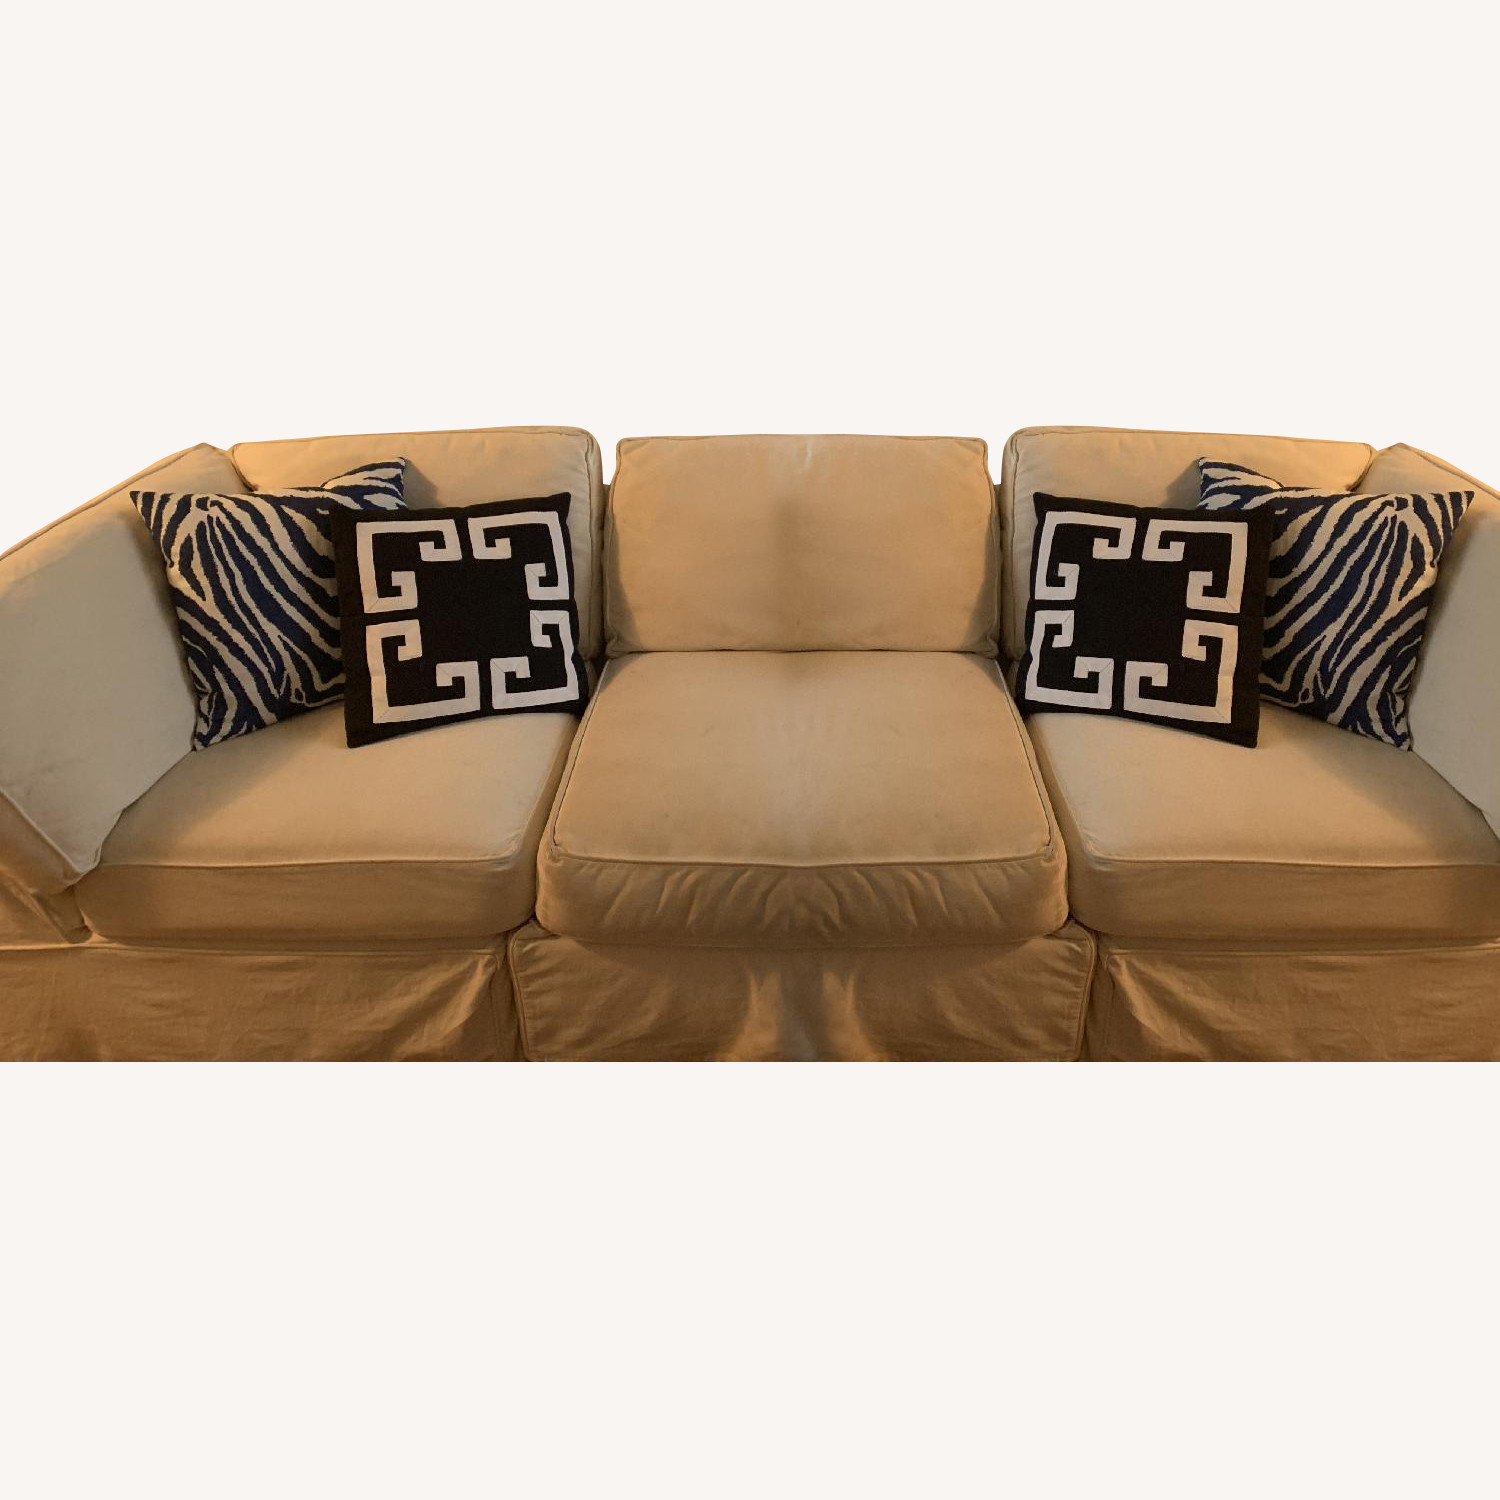 Pottery Barn PB Basic Sectional Sofa